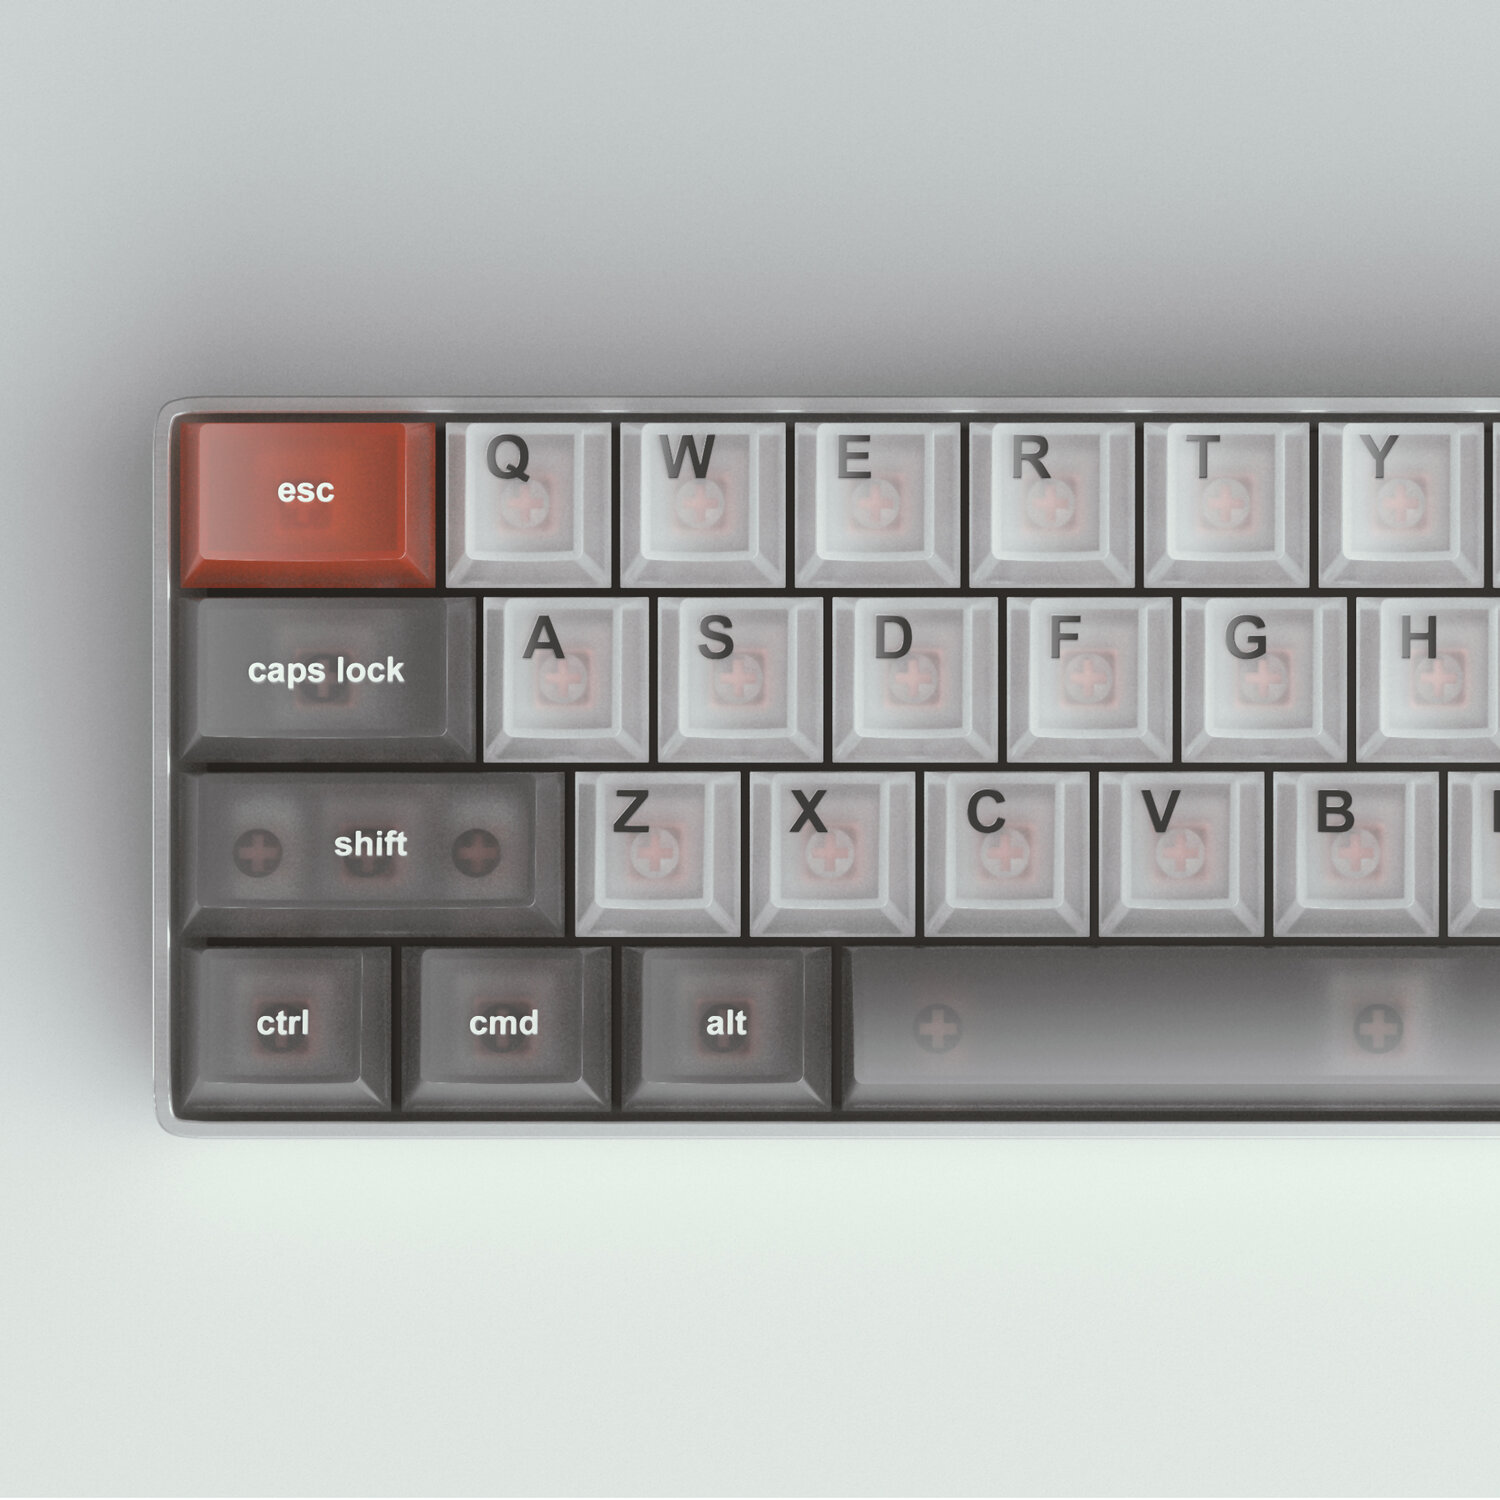 keyboard-full-layout-L.jpg